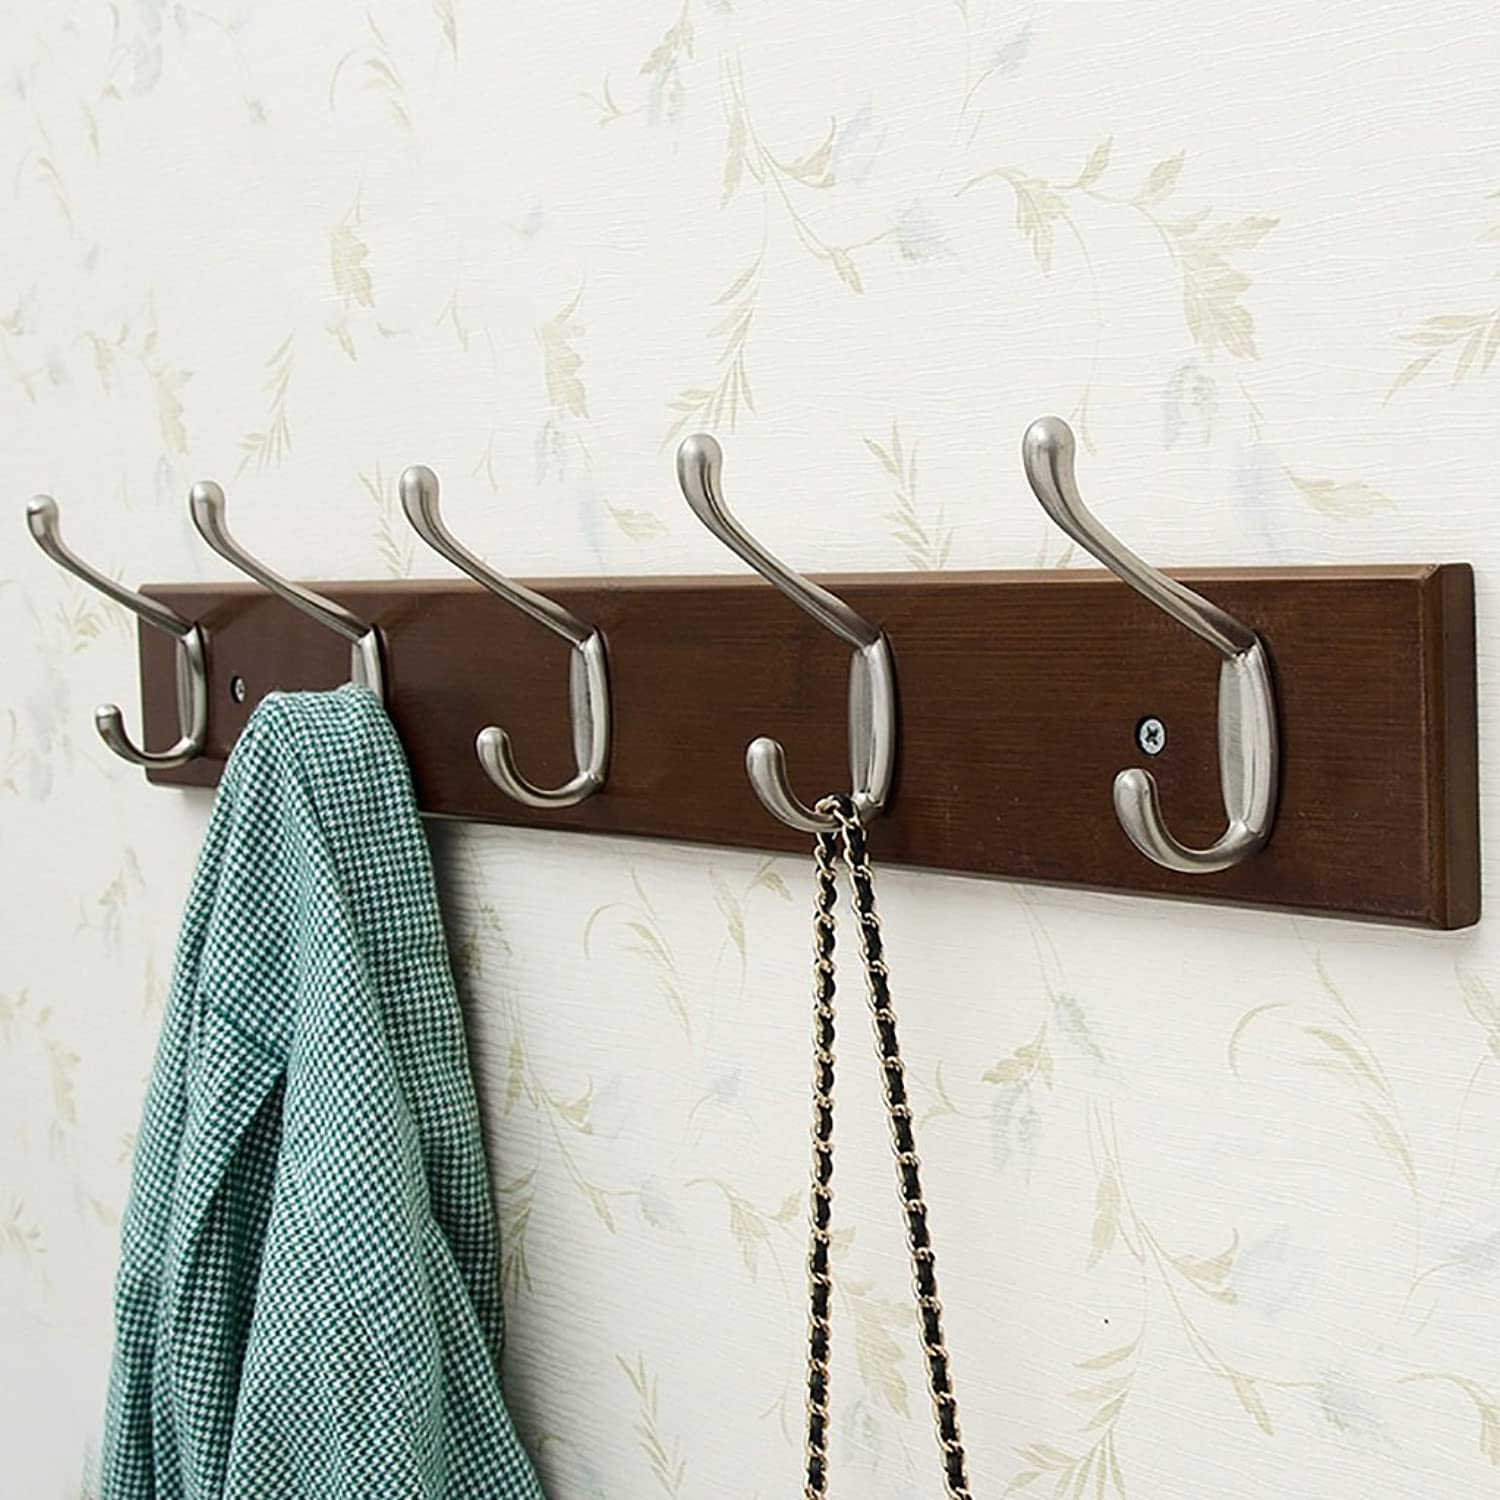 Wall Mounted Coat Rack, Wall-Hung Coat Hooks,Bedroom Living Room Entrance Simple Modern Bamboo System Wall-Mounted Coat Racks (Size   61  1.5  7.5cm)